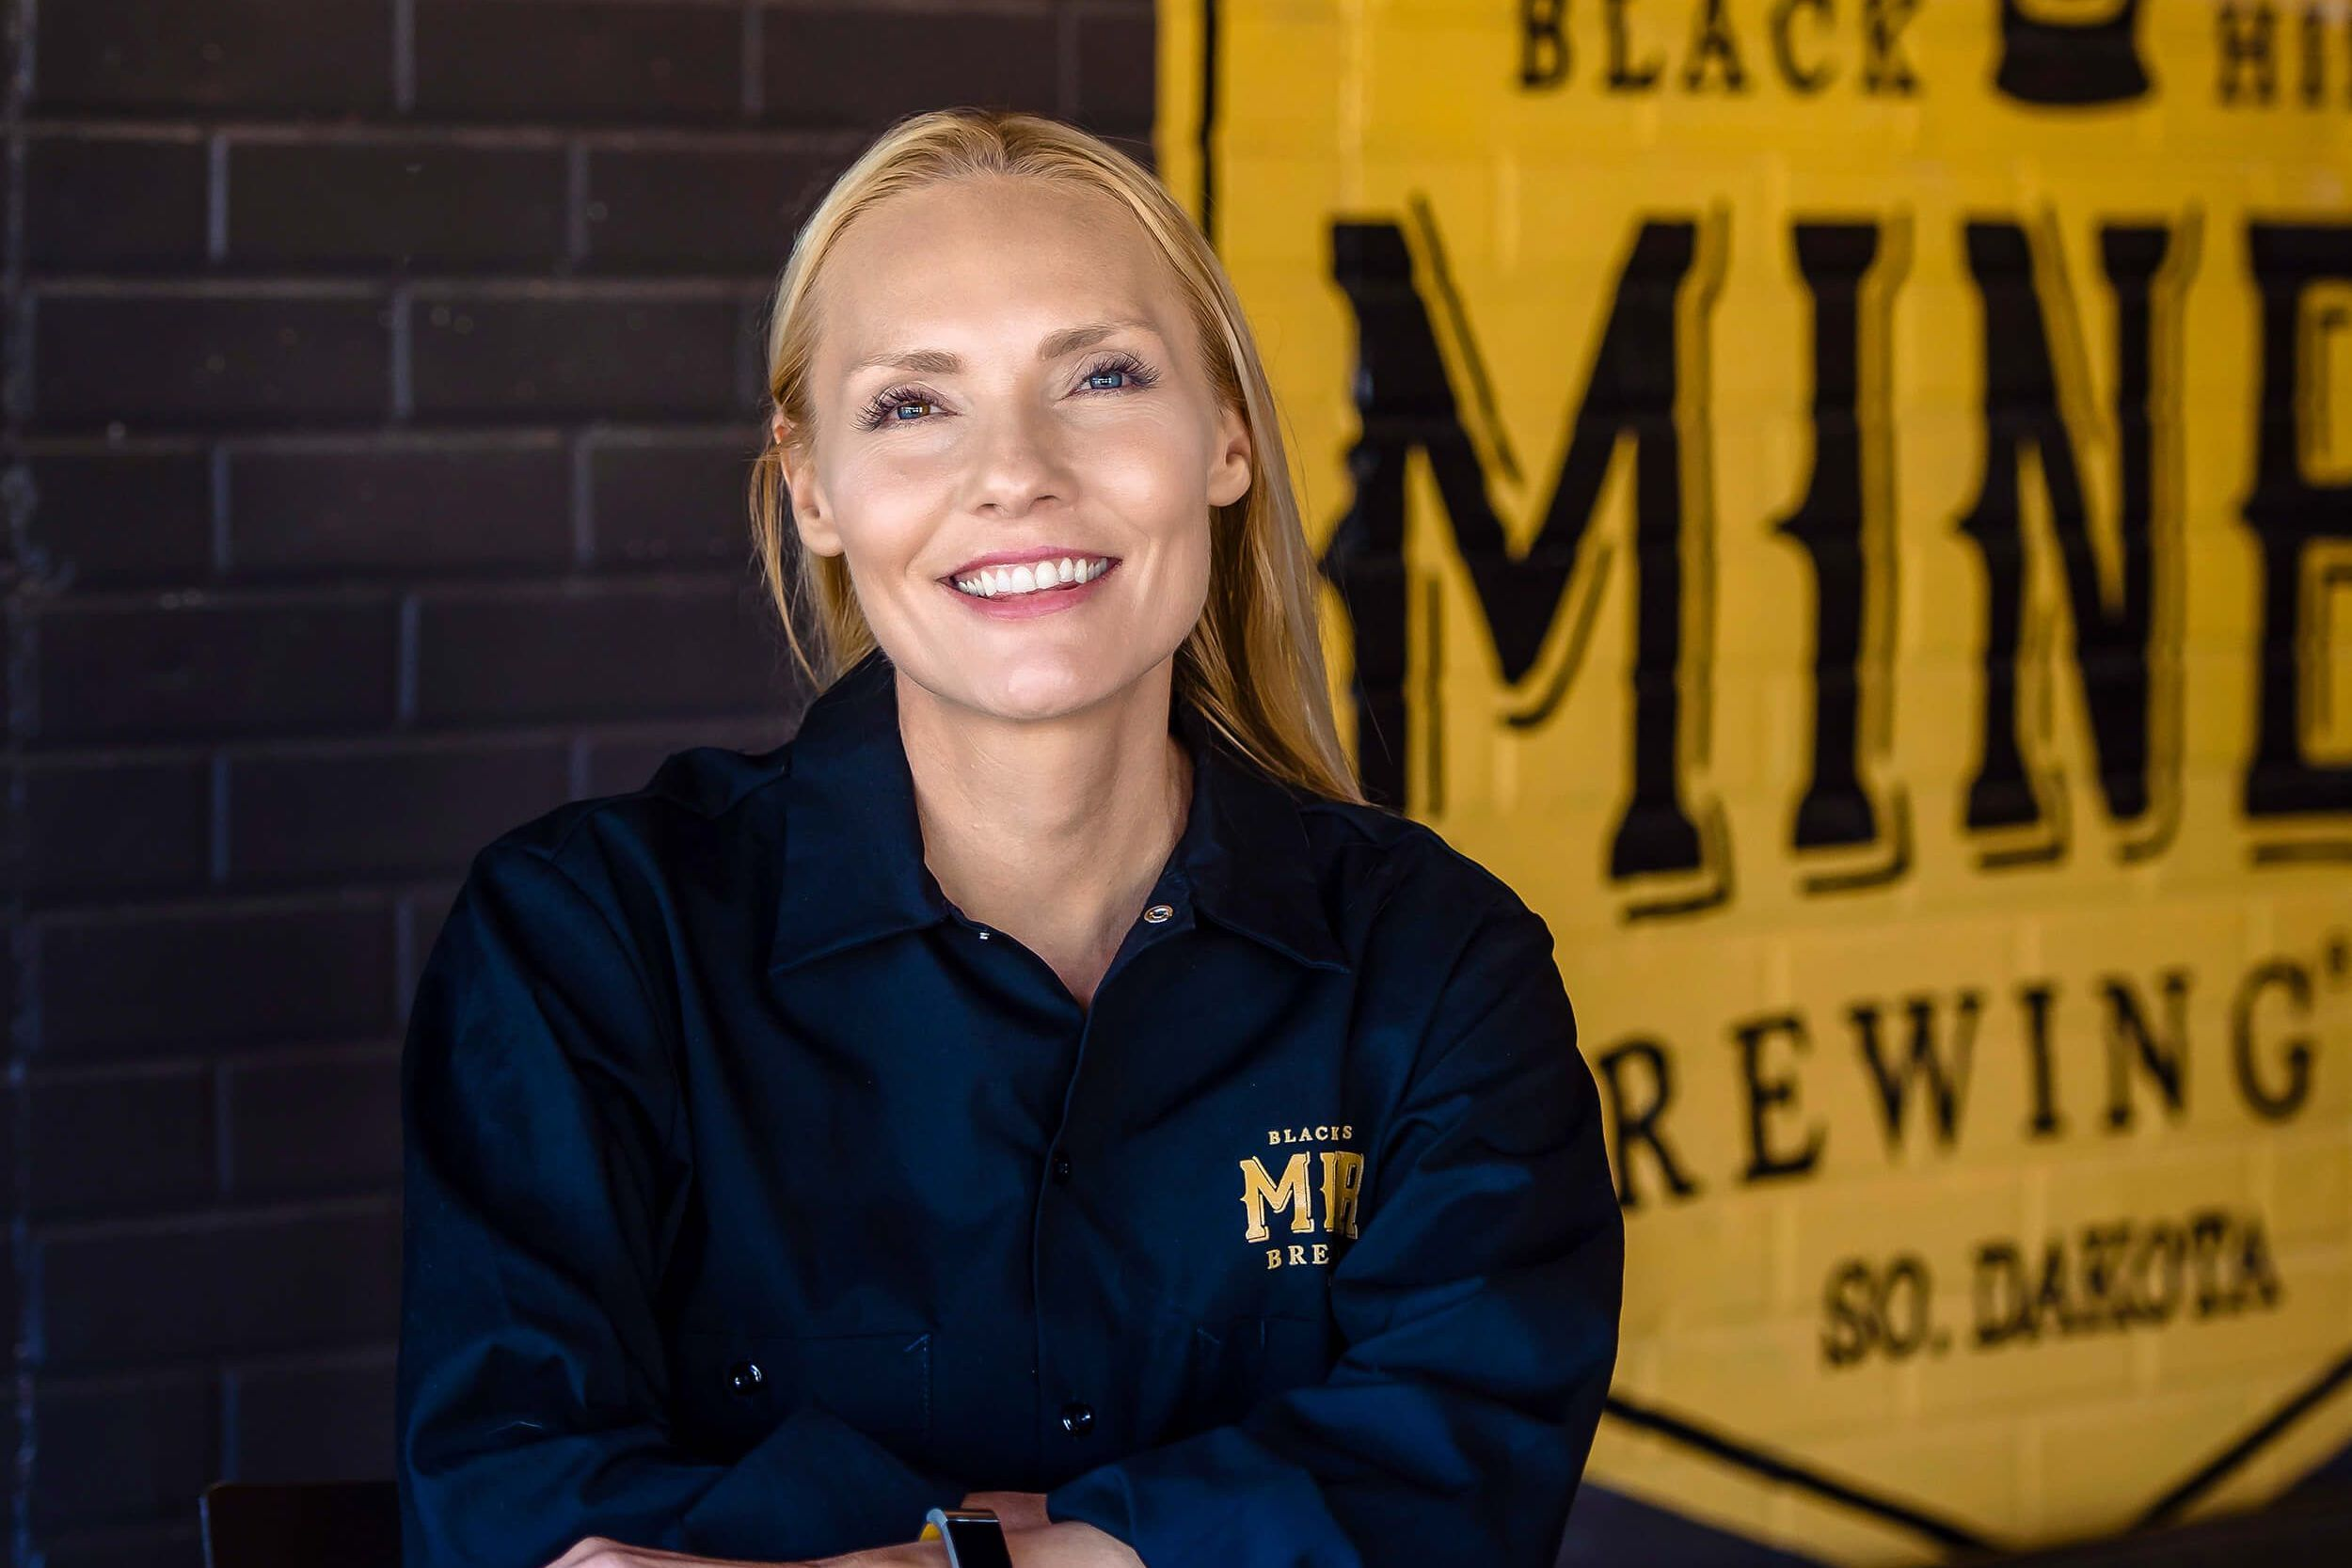 Sandi Vojta is co-founder and Brewmaster at Miner Brewing Company near Hill City, South Dakota.